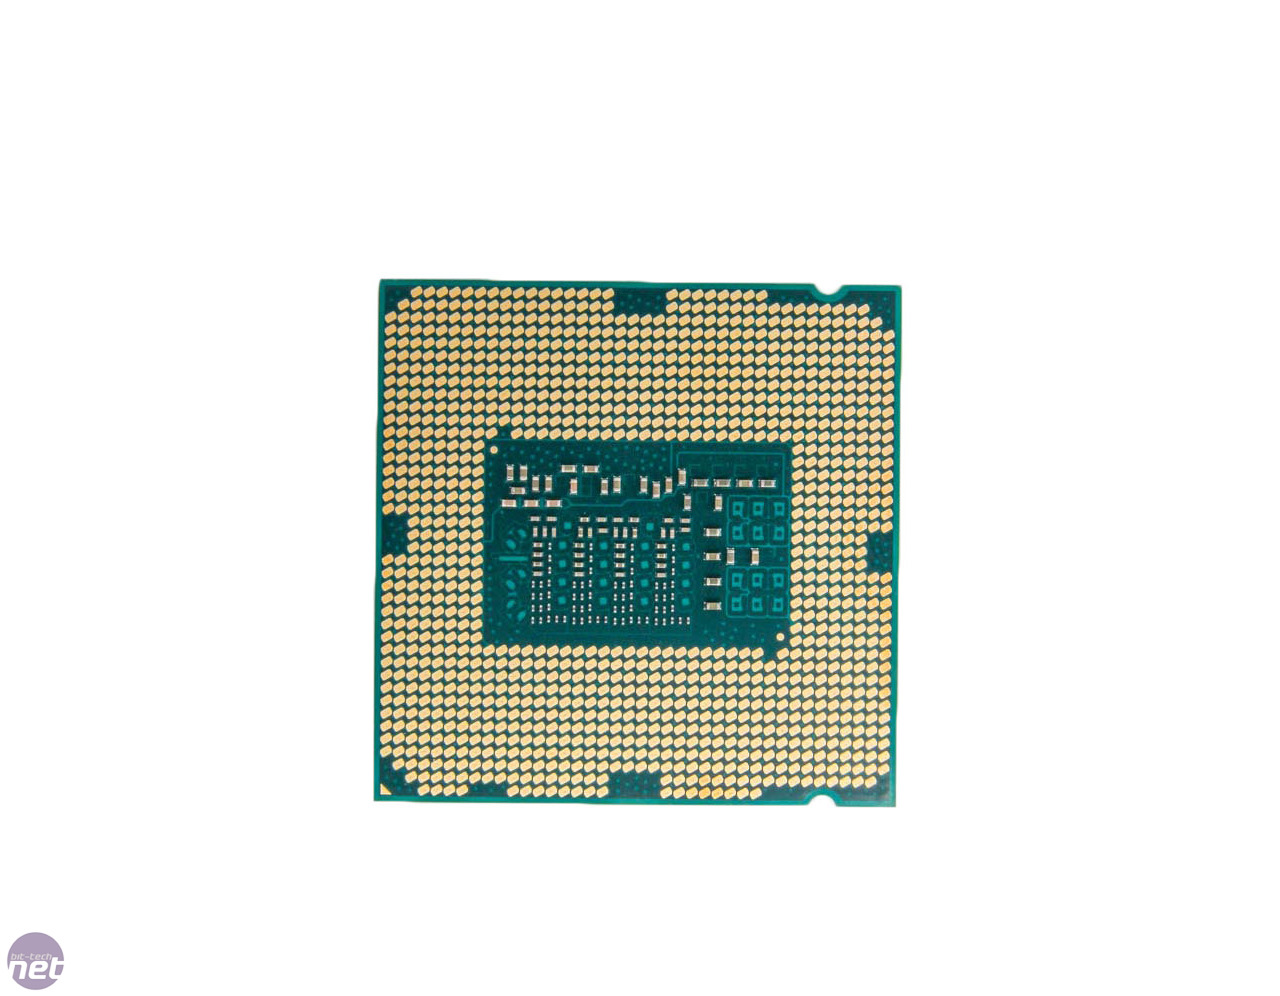 Intel Core i7-4790K (Devil's Canyon) Review | bit-tech net